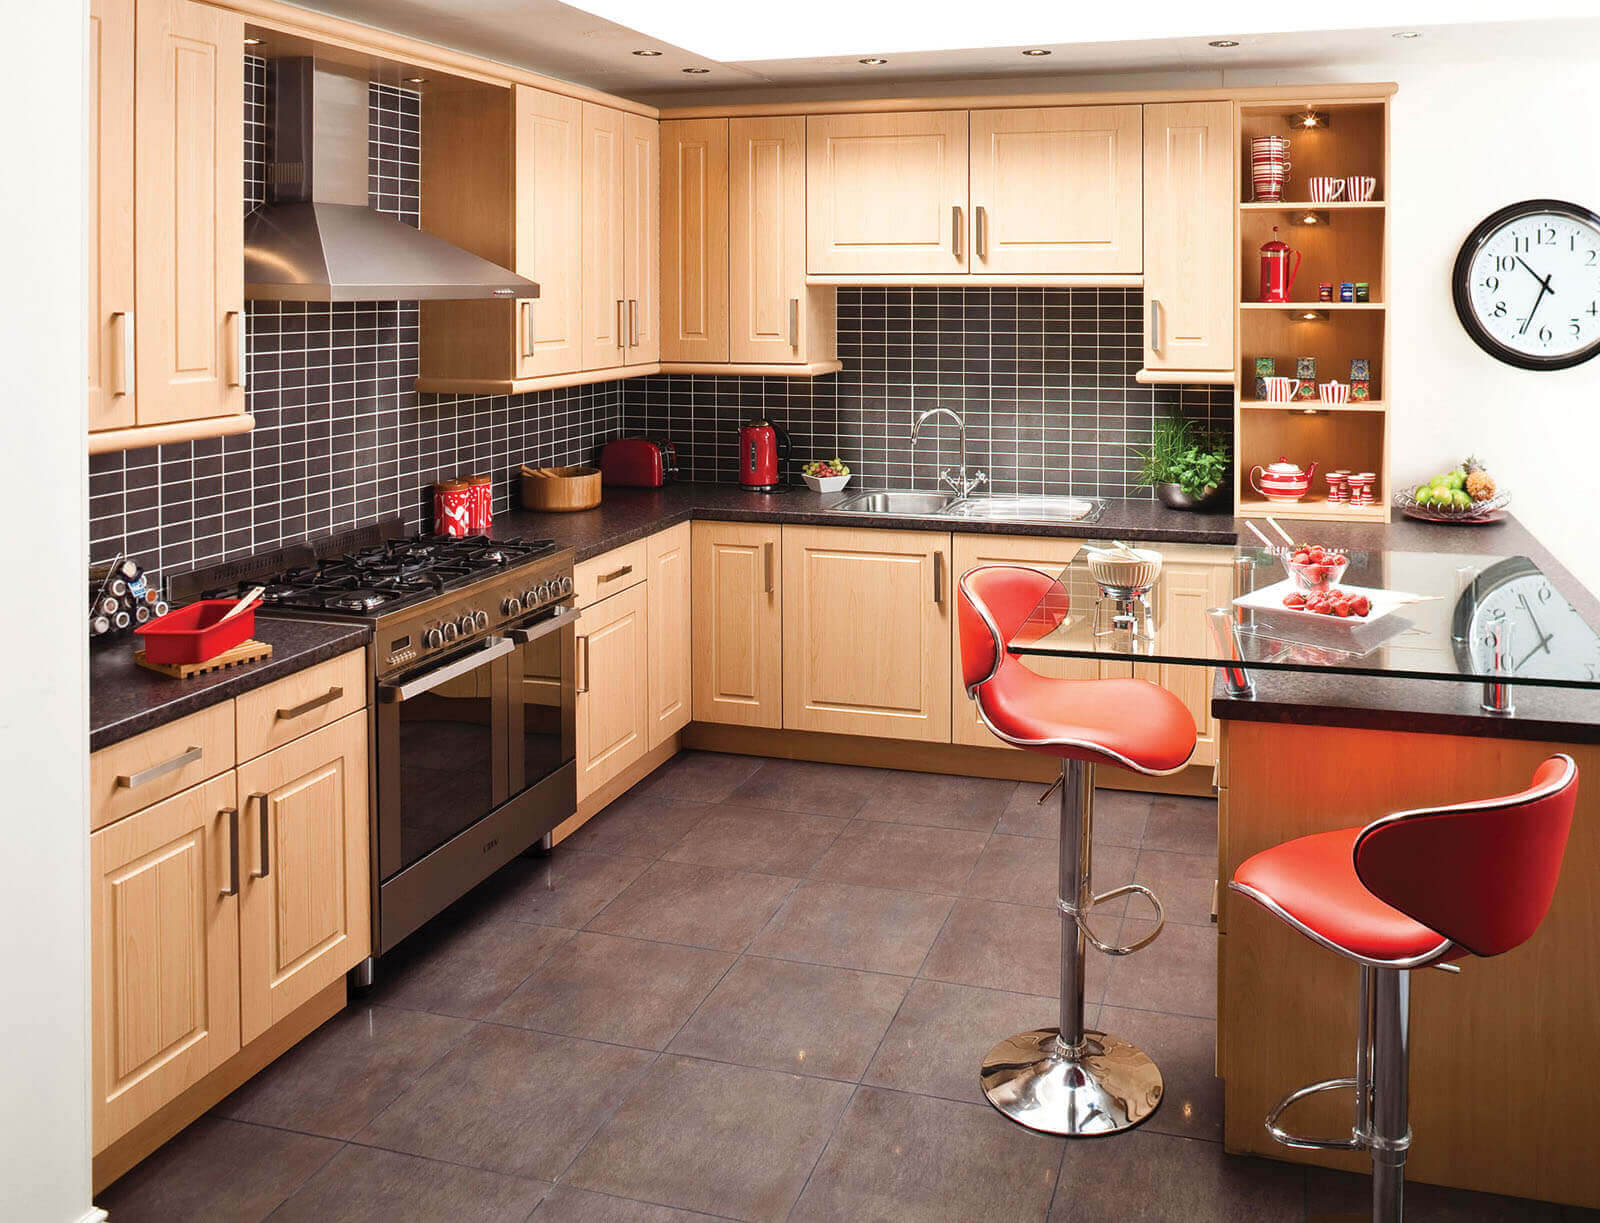 Contemporary Kitchen Tiles for Backsplash